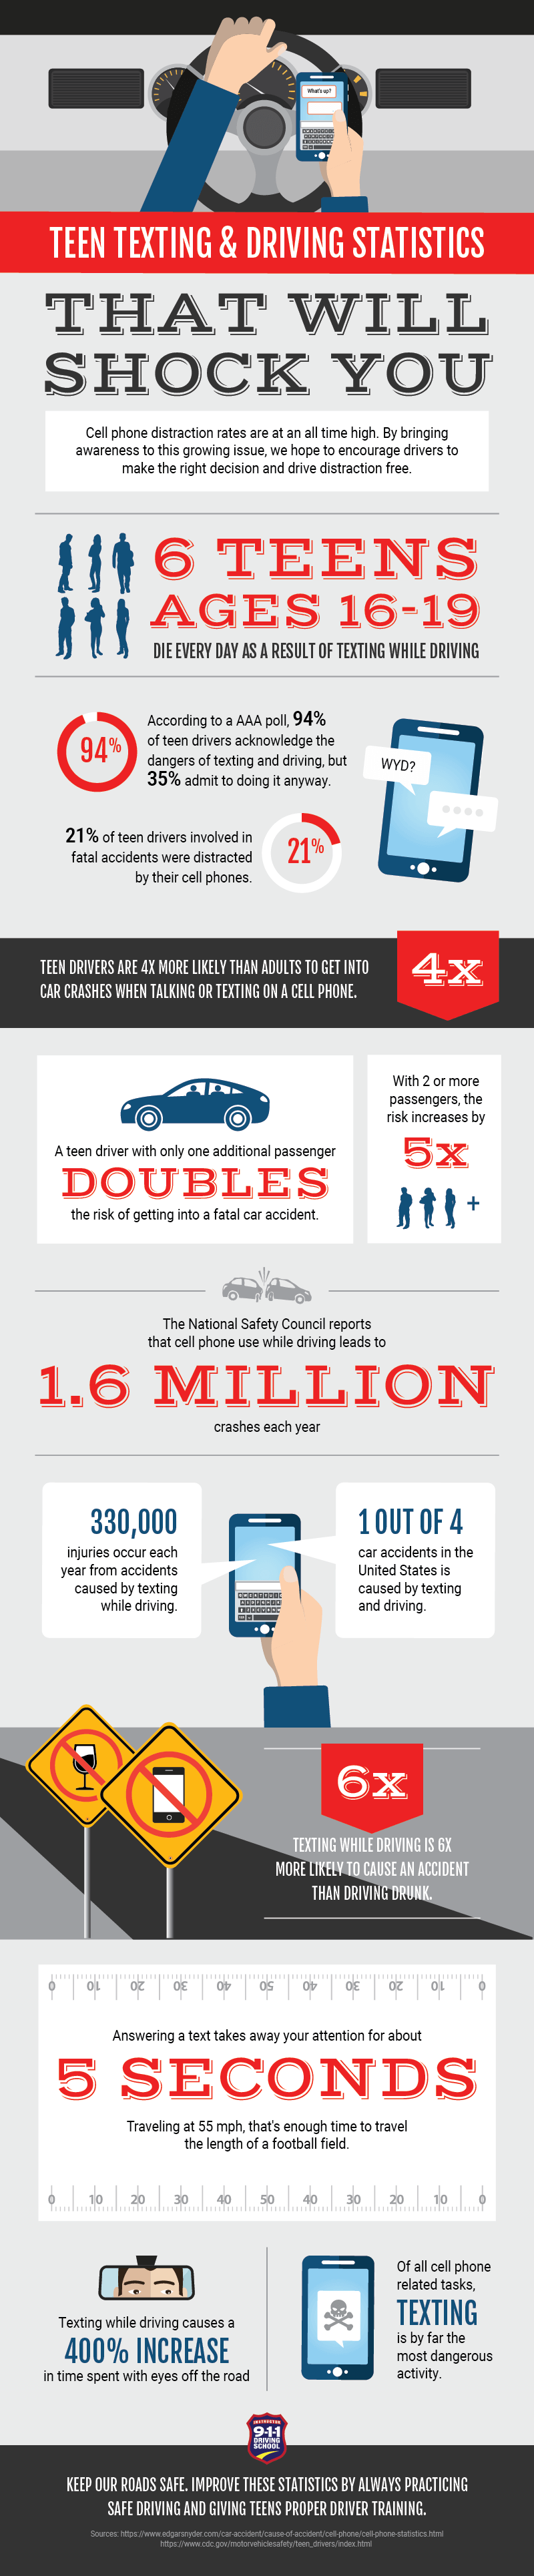 Teen Texting & Driving Statistics Infographic | 911 Driving School